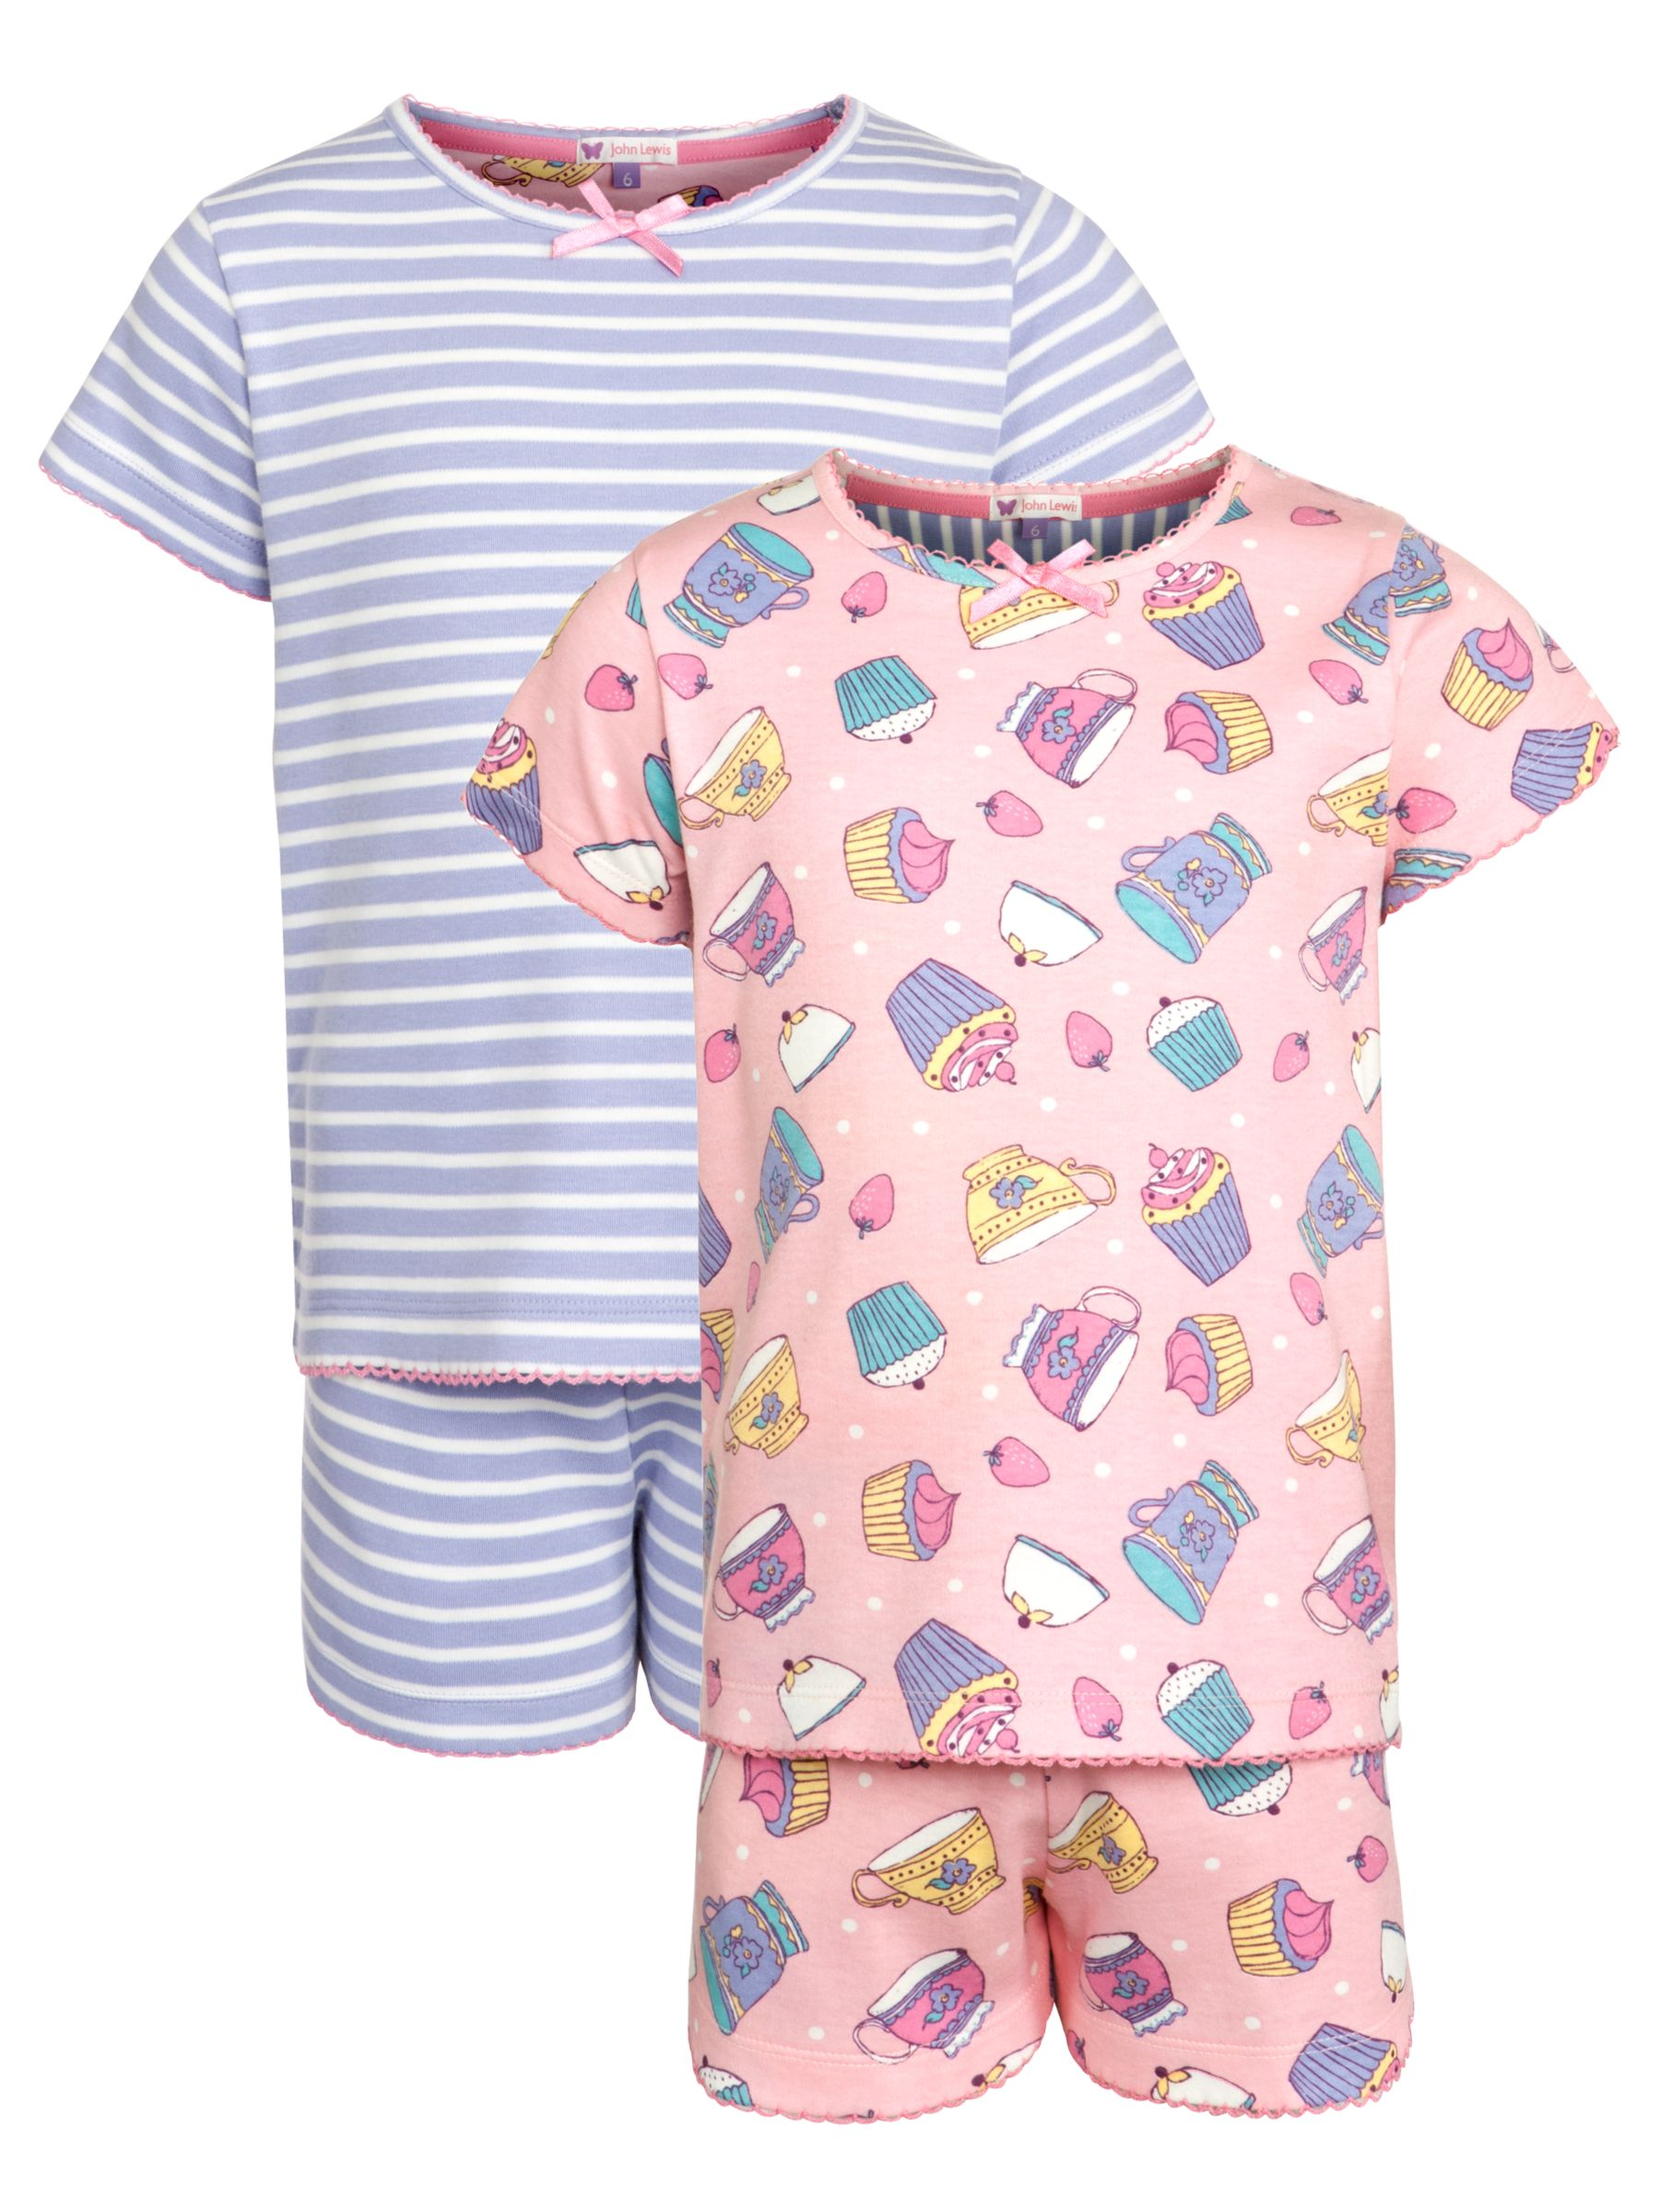 John Lewis Girl Patterned Pyjamas, Pack of 2, Pink/Purple